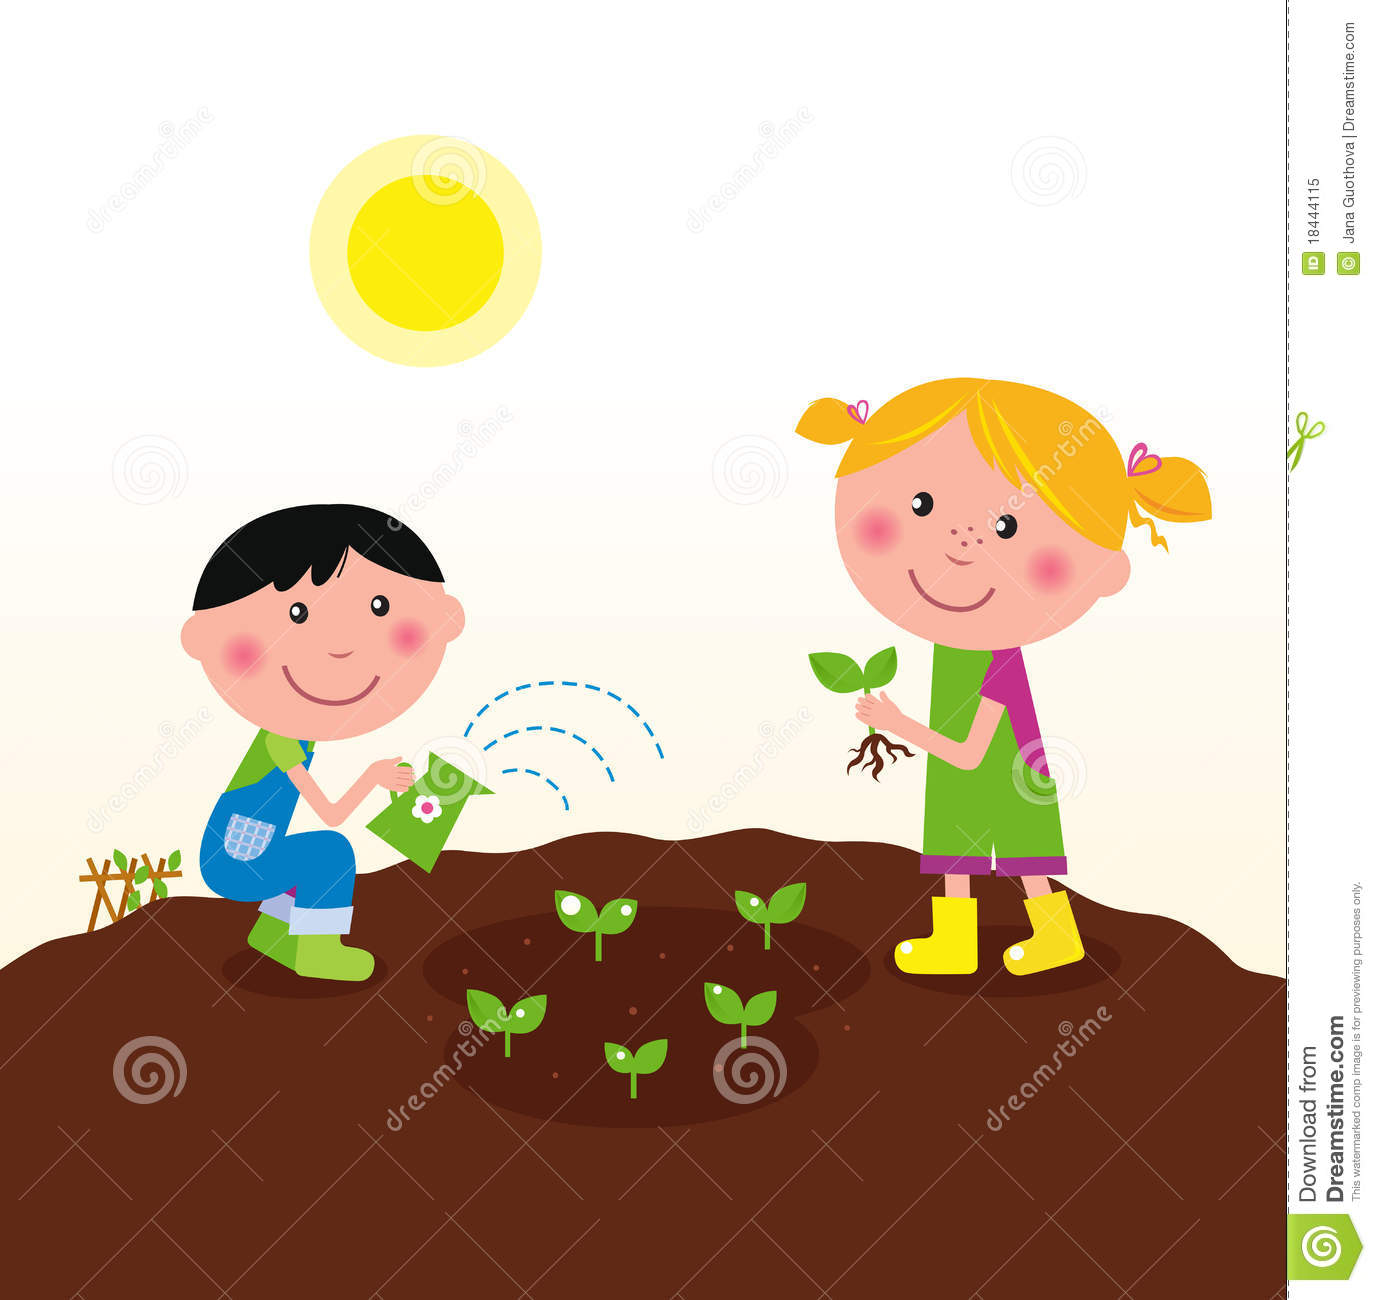 Seed clipart kid plant From Clipart Clip Art Seeds